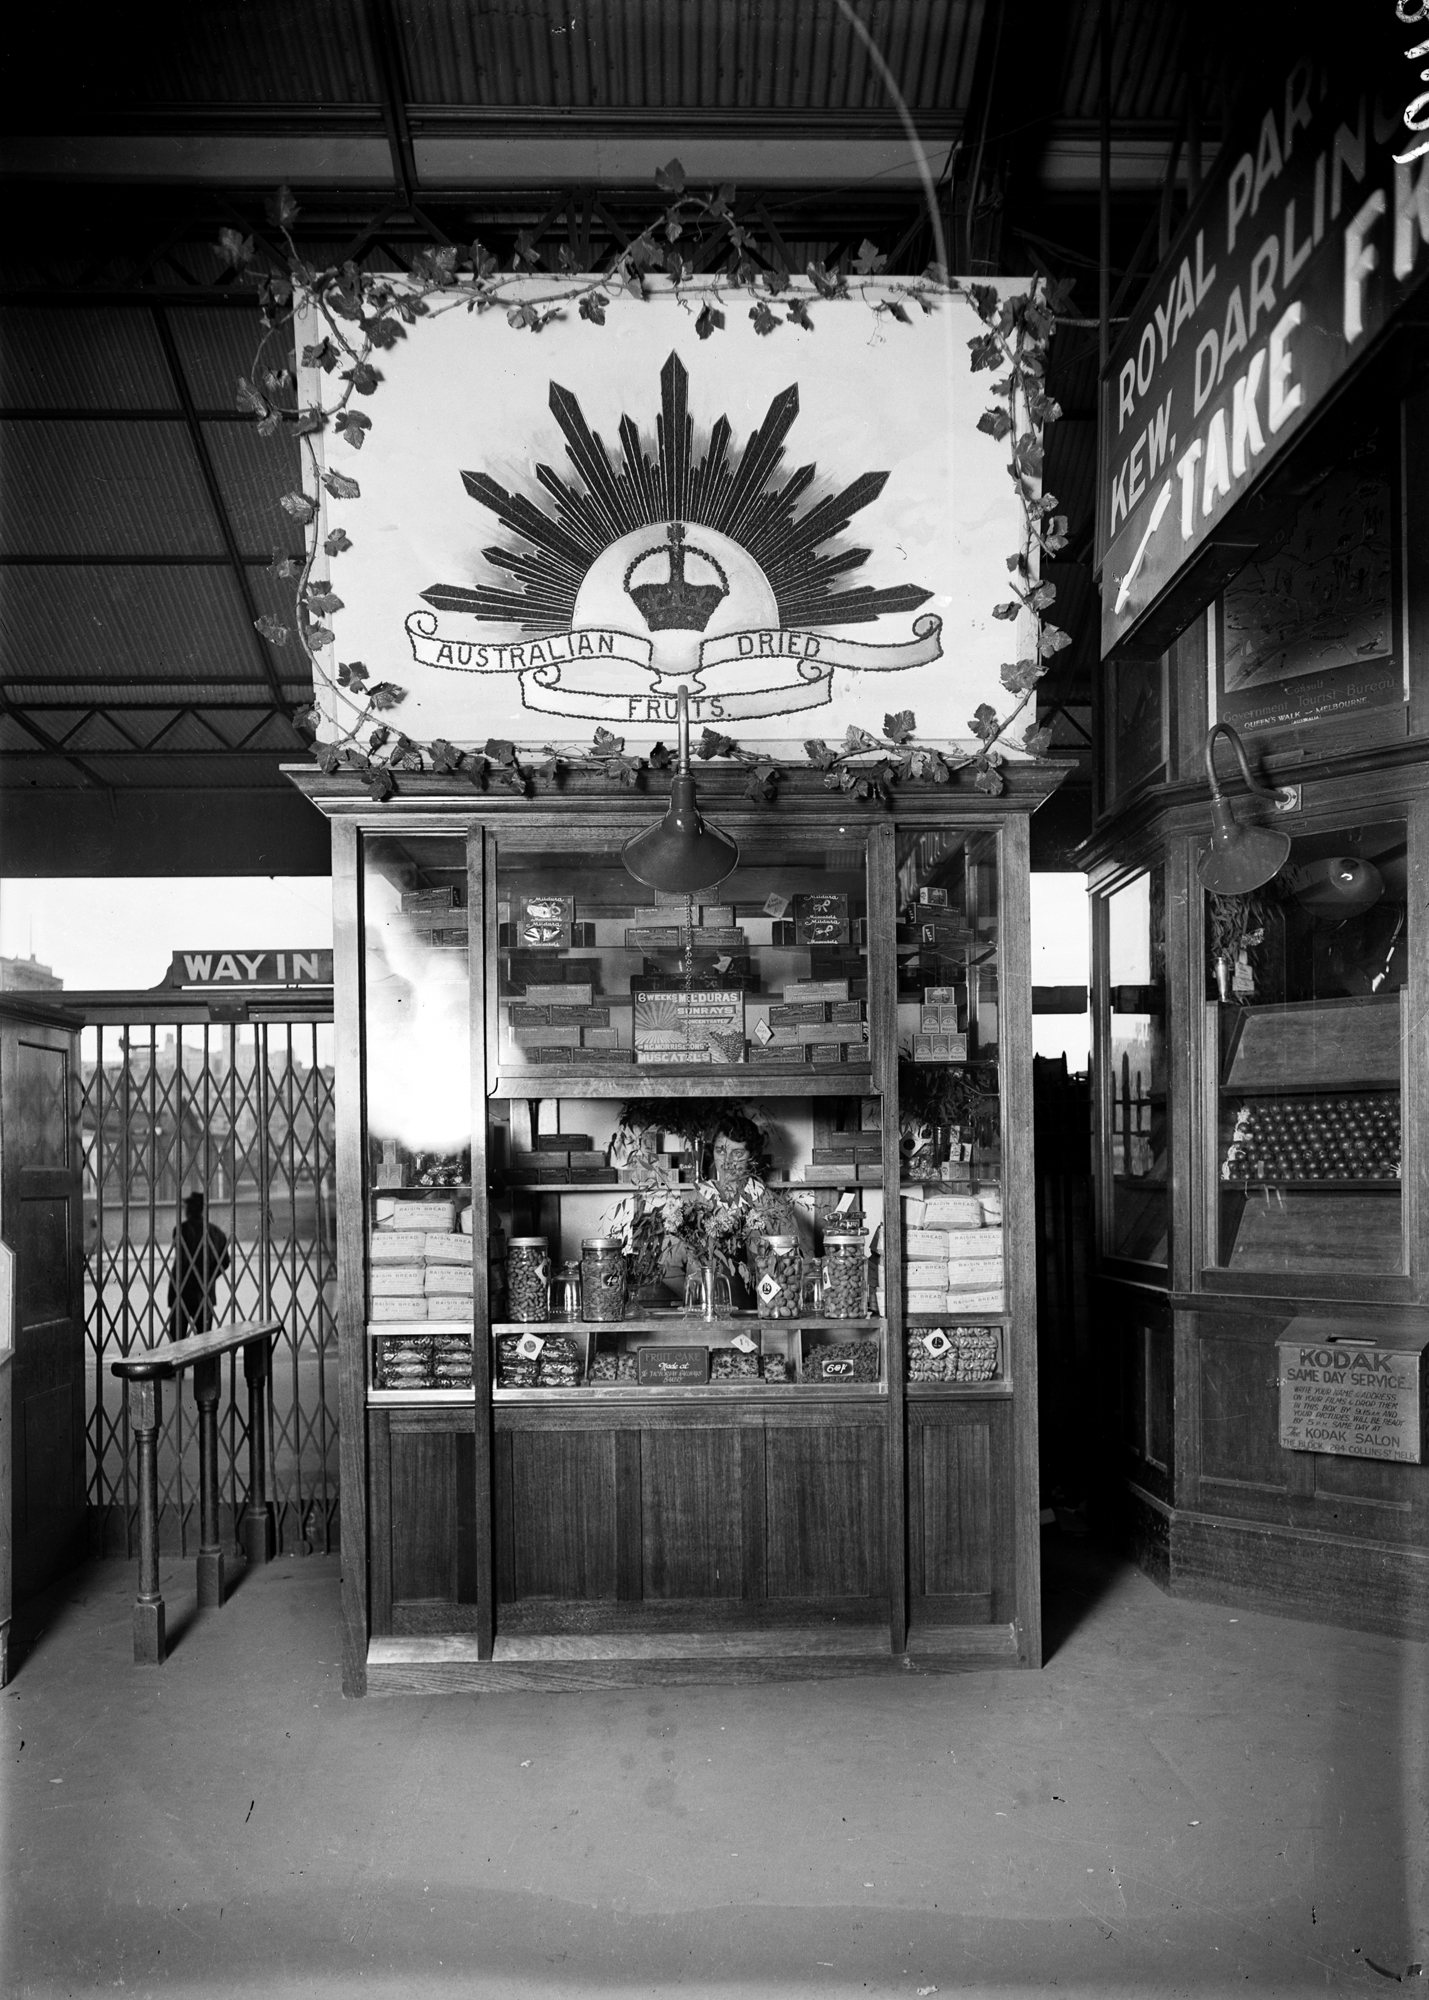 Dried fruit stall at Flinders Street Station, circa 1920s